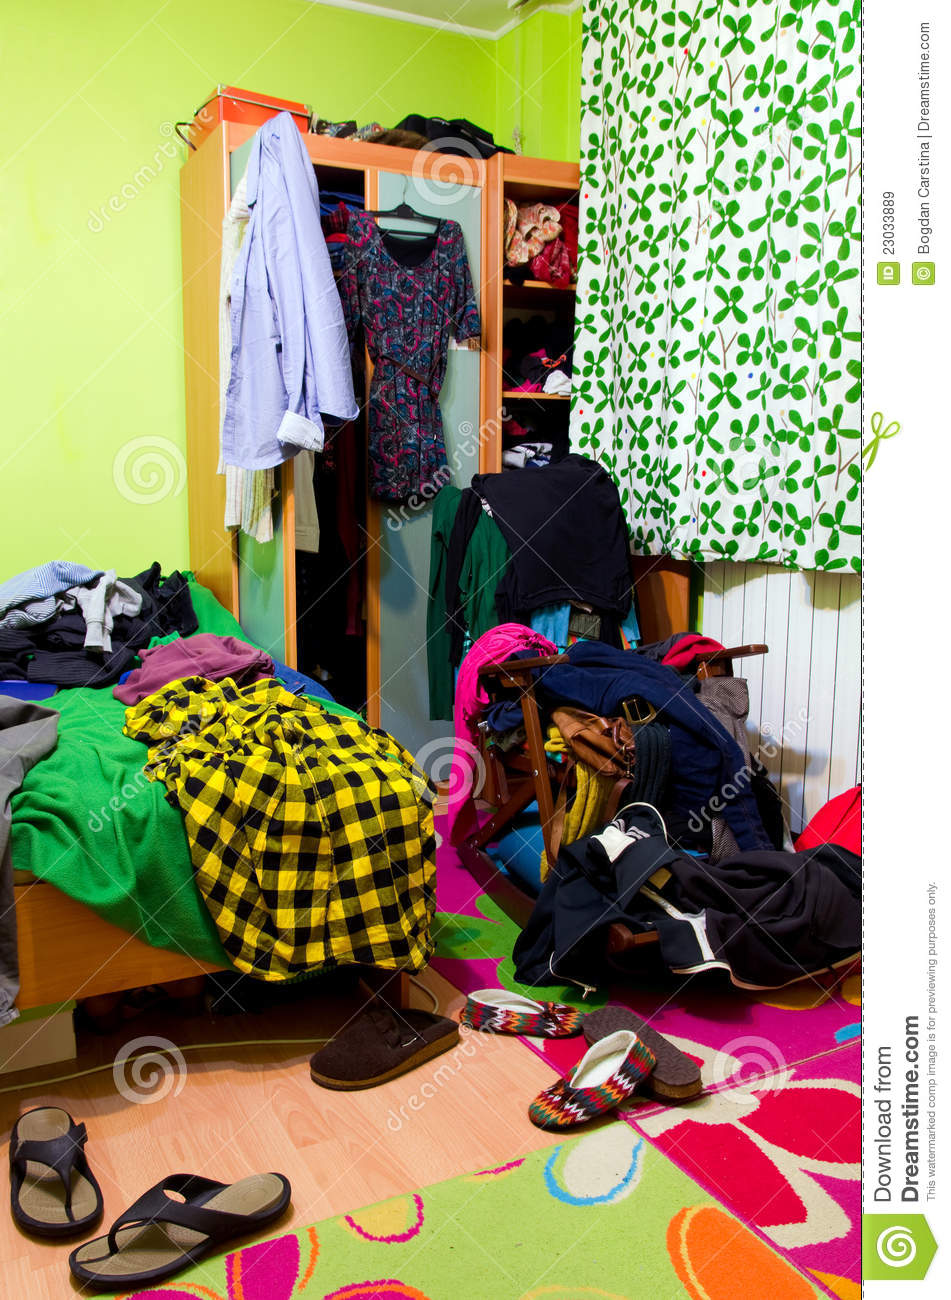 Messy Room Stock Image Image Of Interior Hanging Opened